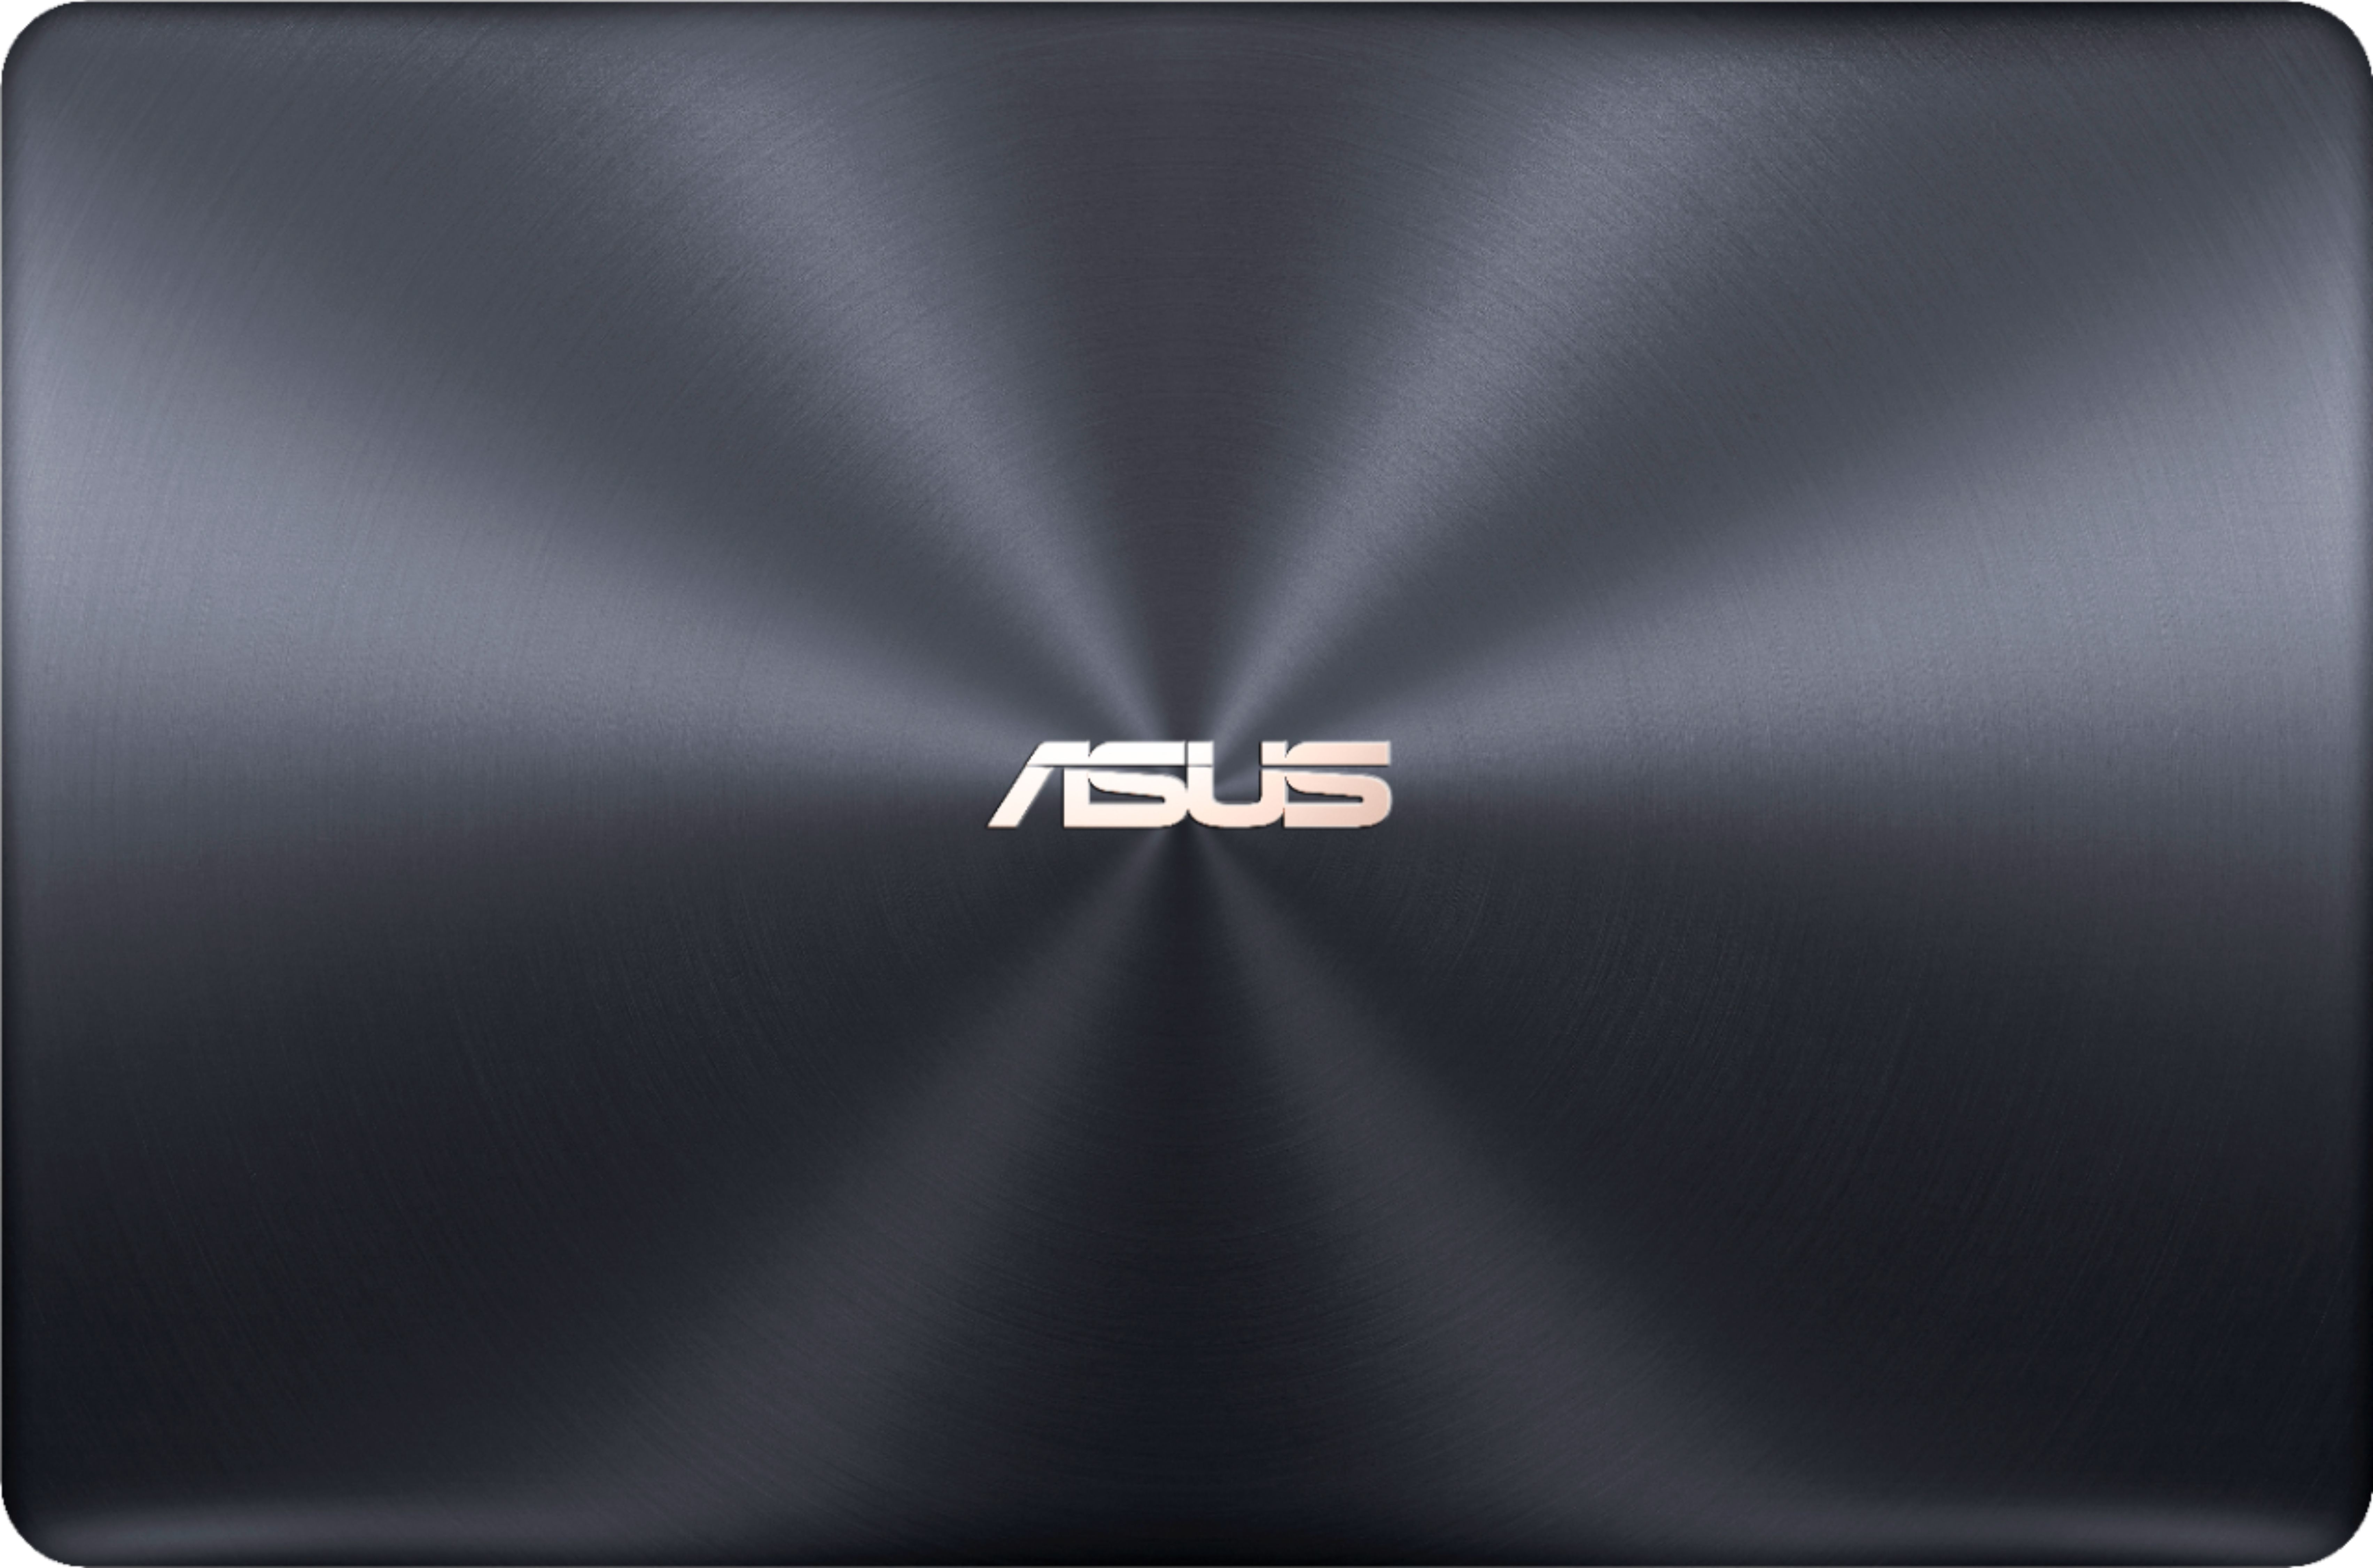 "Alt View Zoom 3. ASUS - Geek Squad Certified Refurbished 15.6"" Laptop - Intel Core i7 - 16GB Memory - NVIDIA GeForce GTX 1050 - 512GB SSD - Deep Dive Blue."